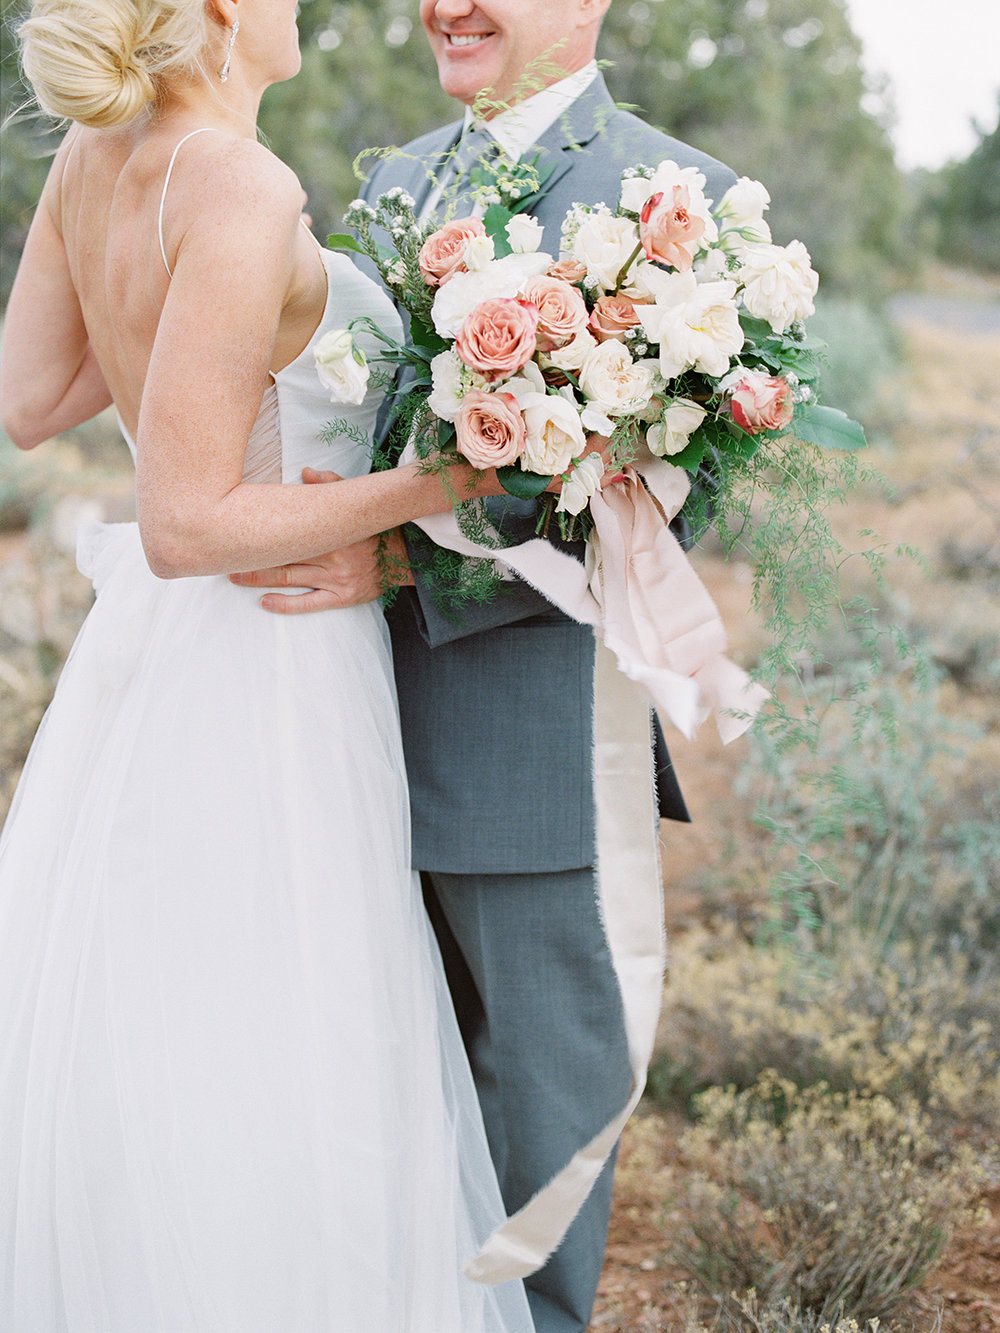 York Sedona Elopement - Ball Photo Co Fine Art Film Wedding Photography-56.jpg